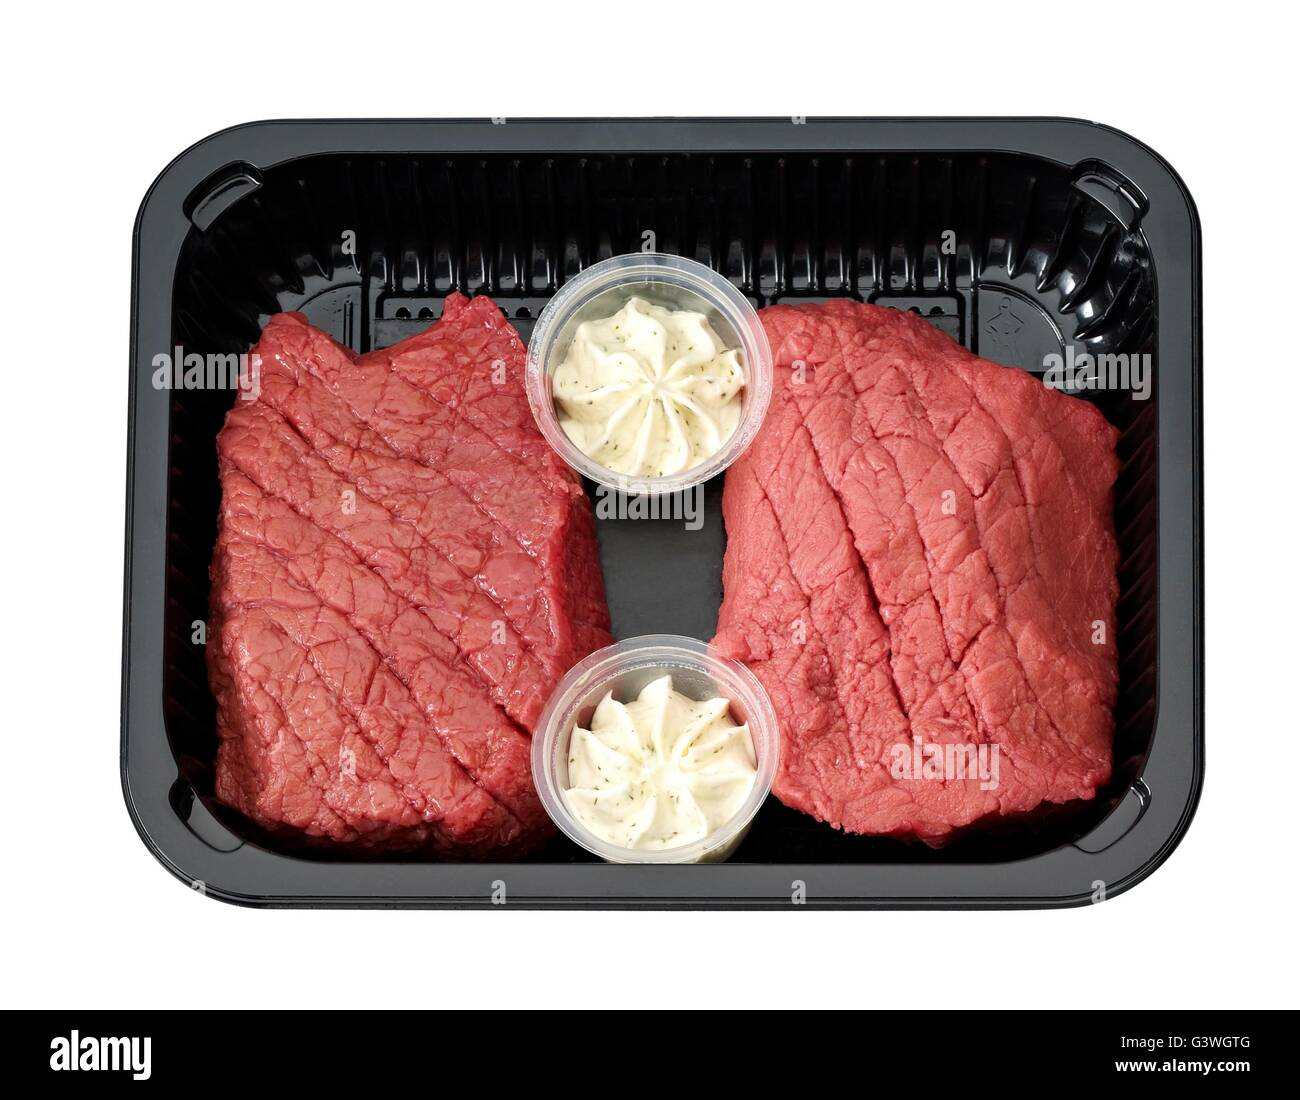 Beef Steak Packaged on tray with butter. - Stock Image